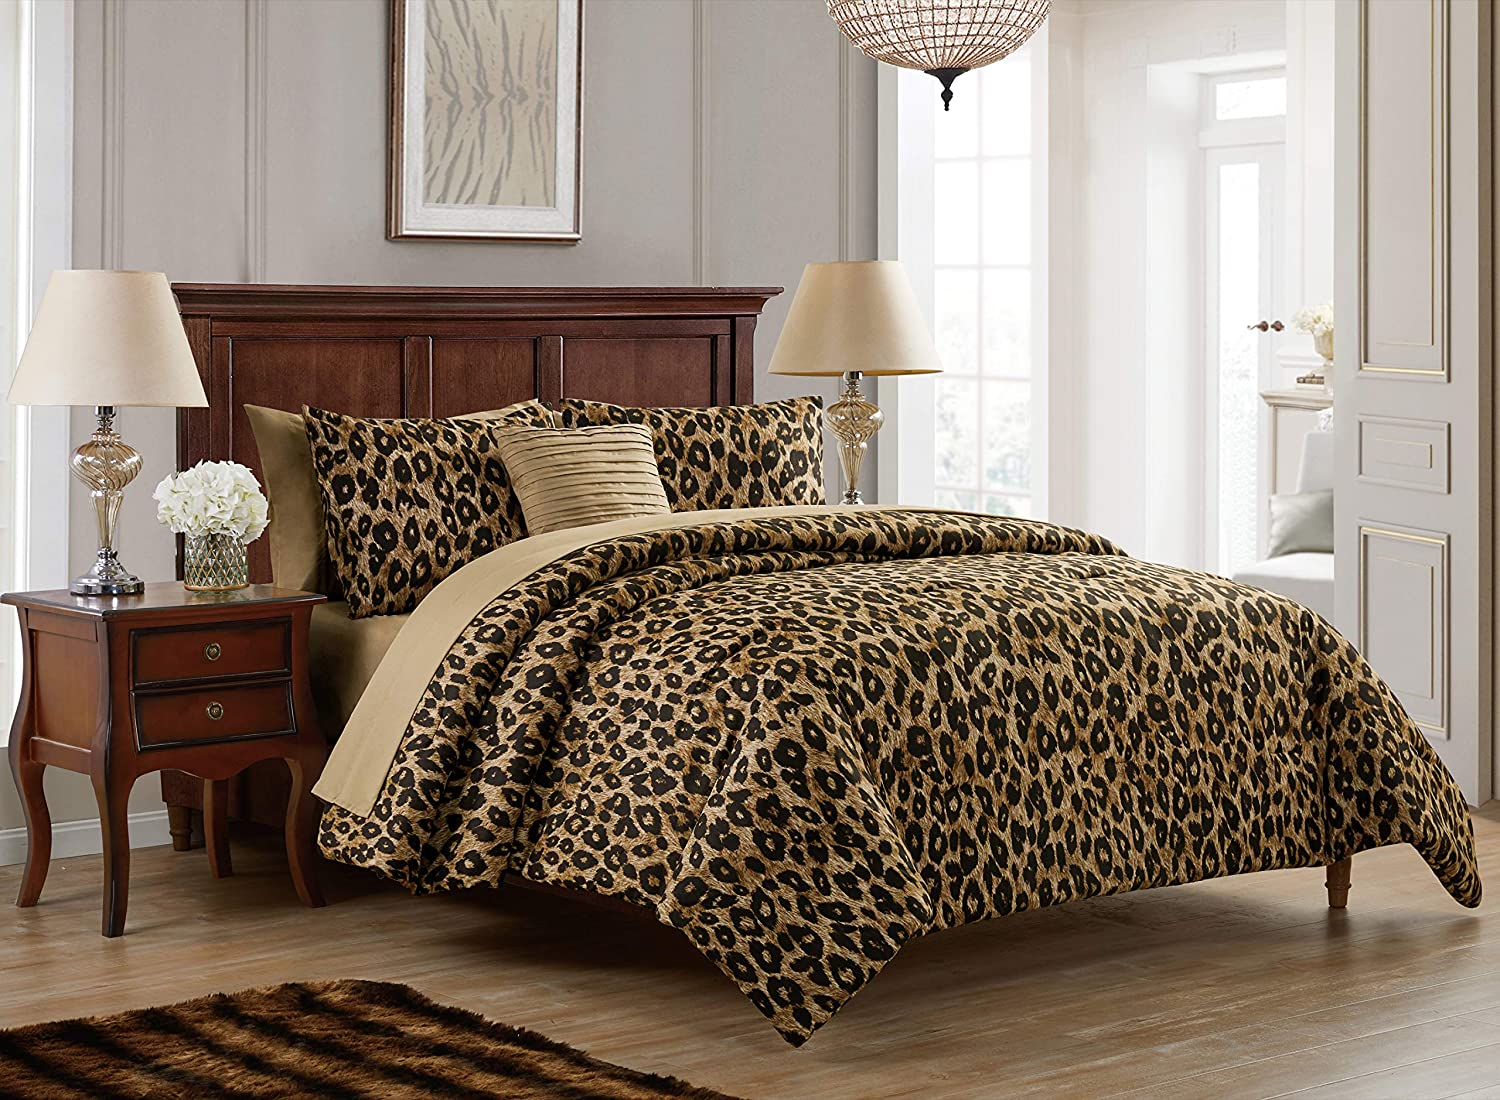 VCNY Home Cheetah Collection Comforter Soft & Cozy Bedding Set, Stylish Chic Design for Home Décor, Machine Washable, Twin XL, Brown